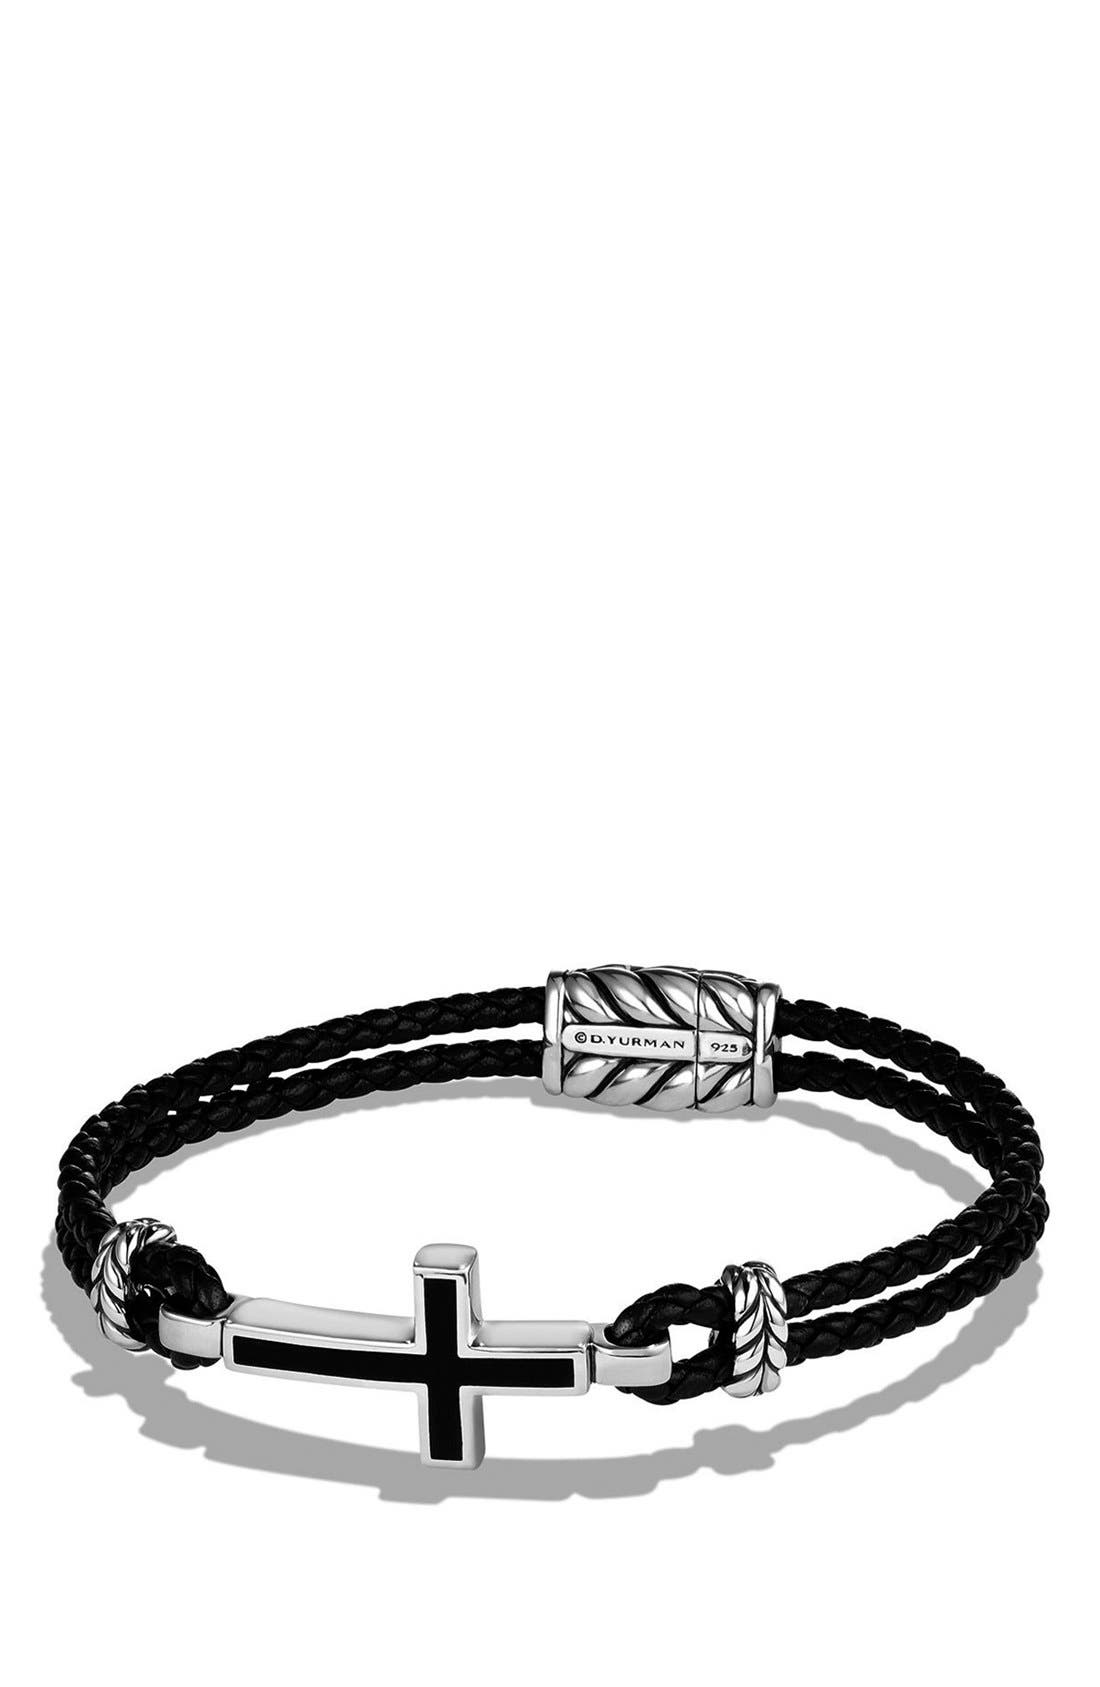 'Exotic Stone' Cross Station Leather Bracelet with Black Onyx,                             Main thumbnail 1, color,                             SILVER/ BLACK ONYX